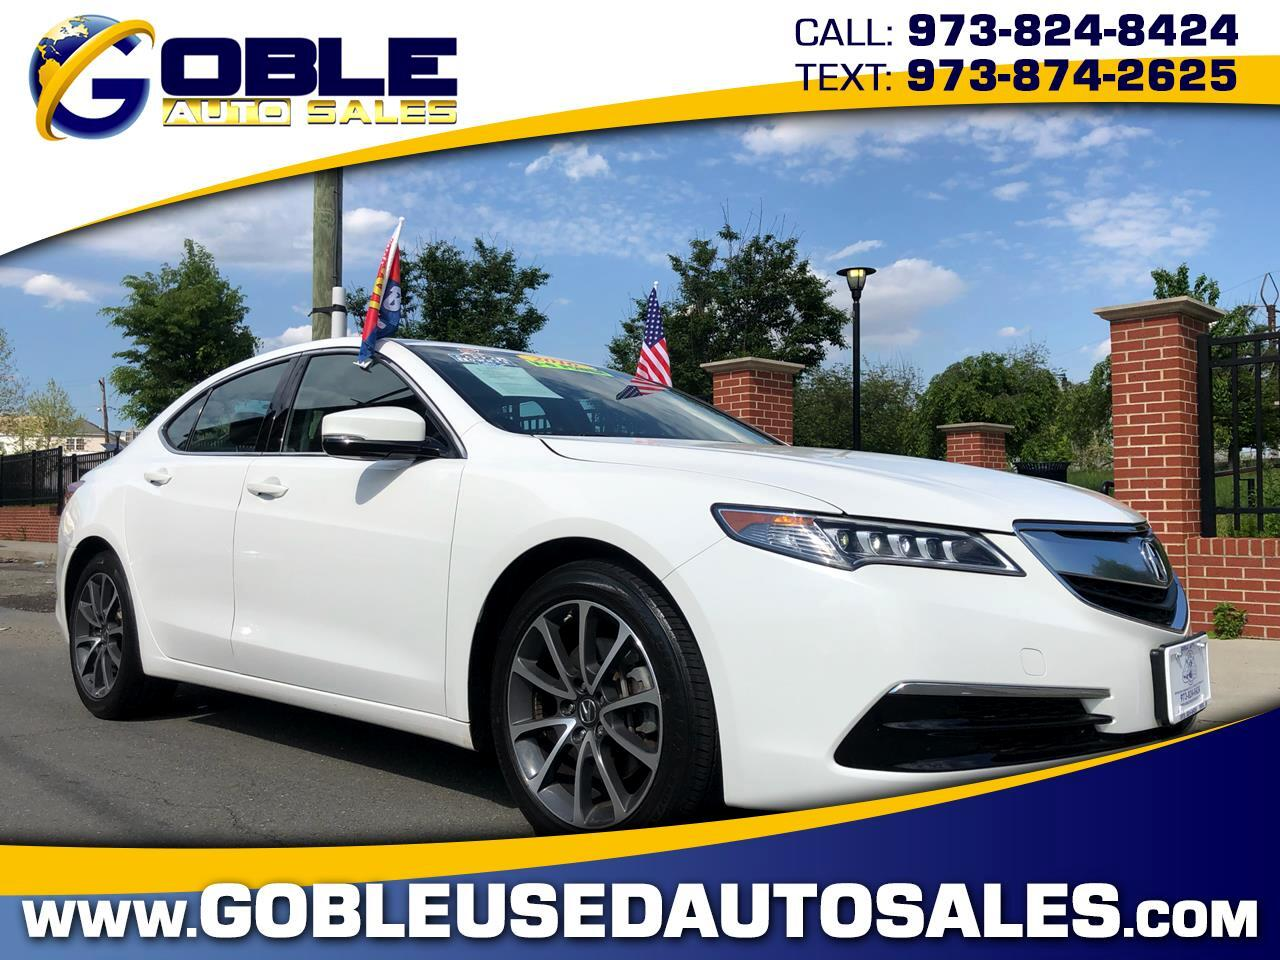 2016 Acura TLX 4dr Sdn FWD V6 Tech